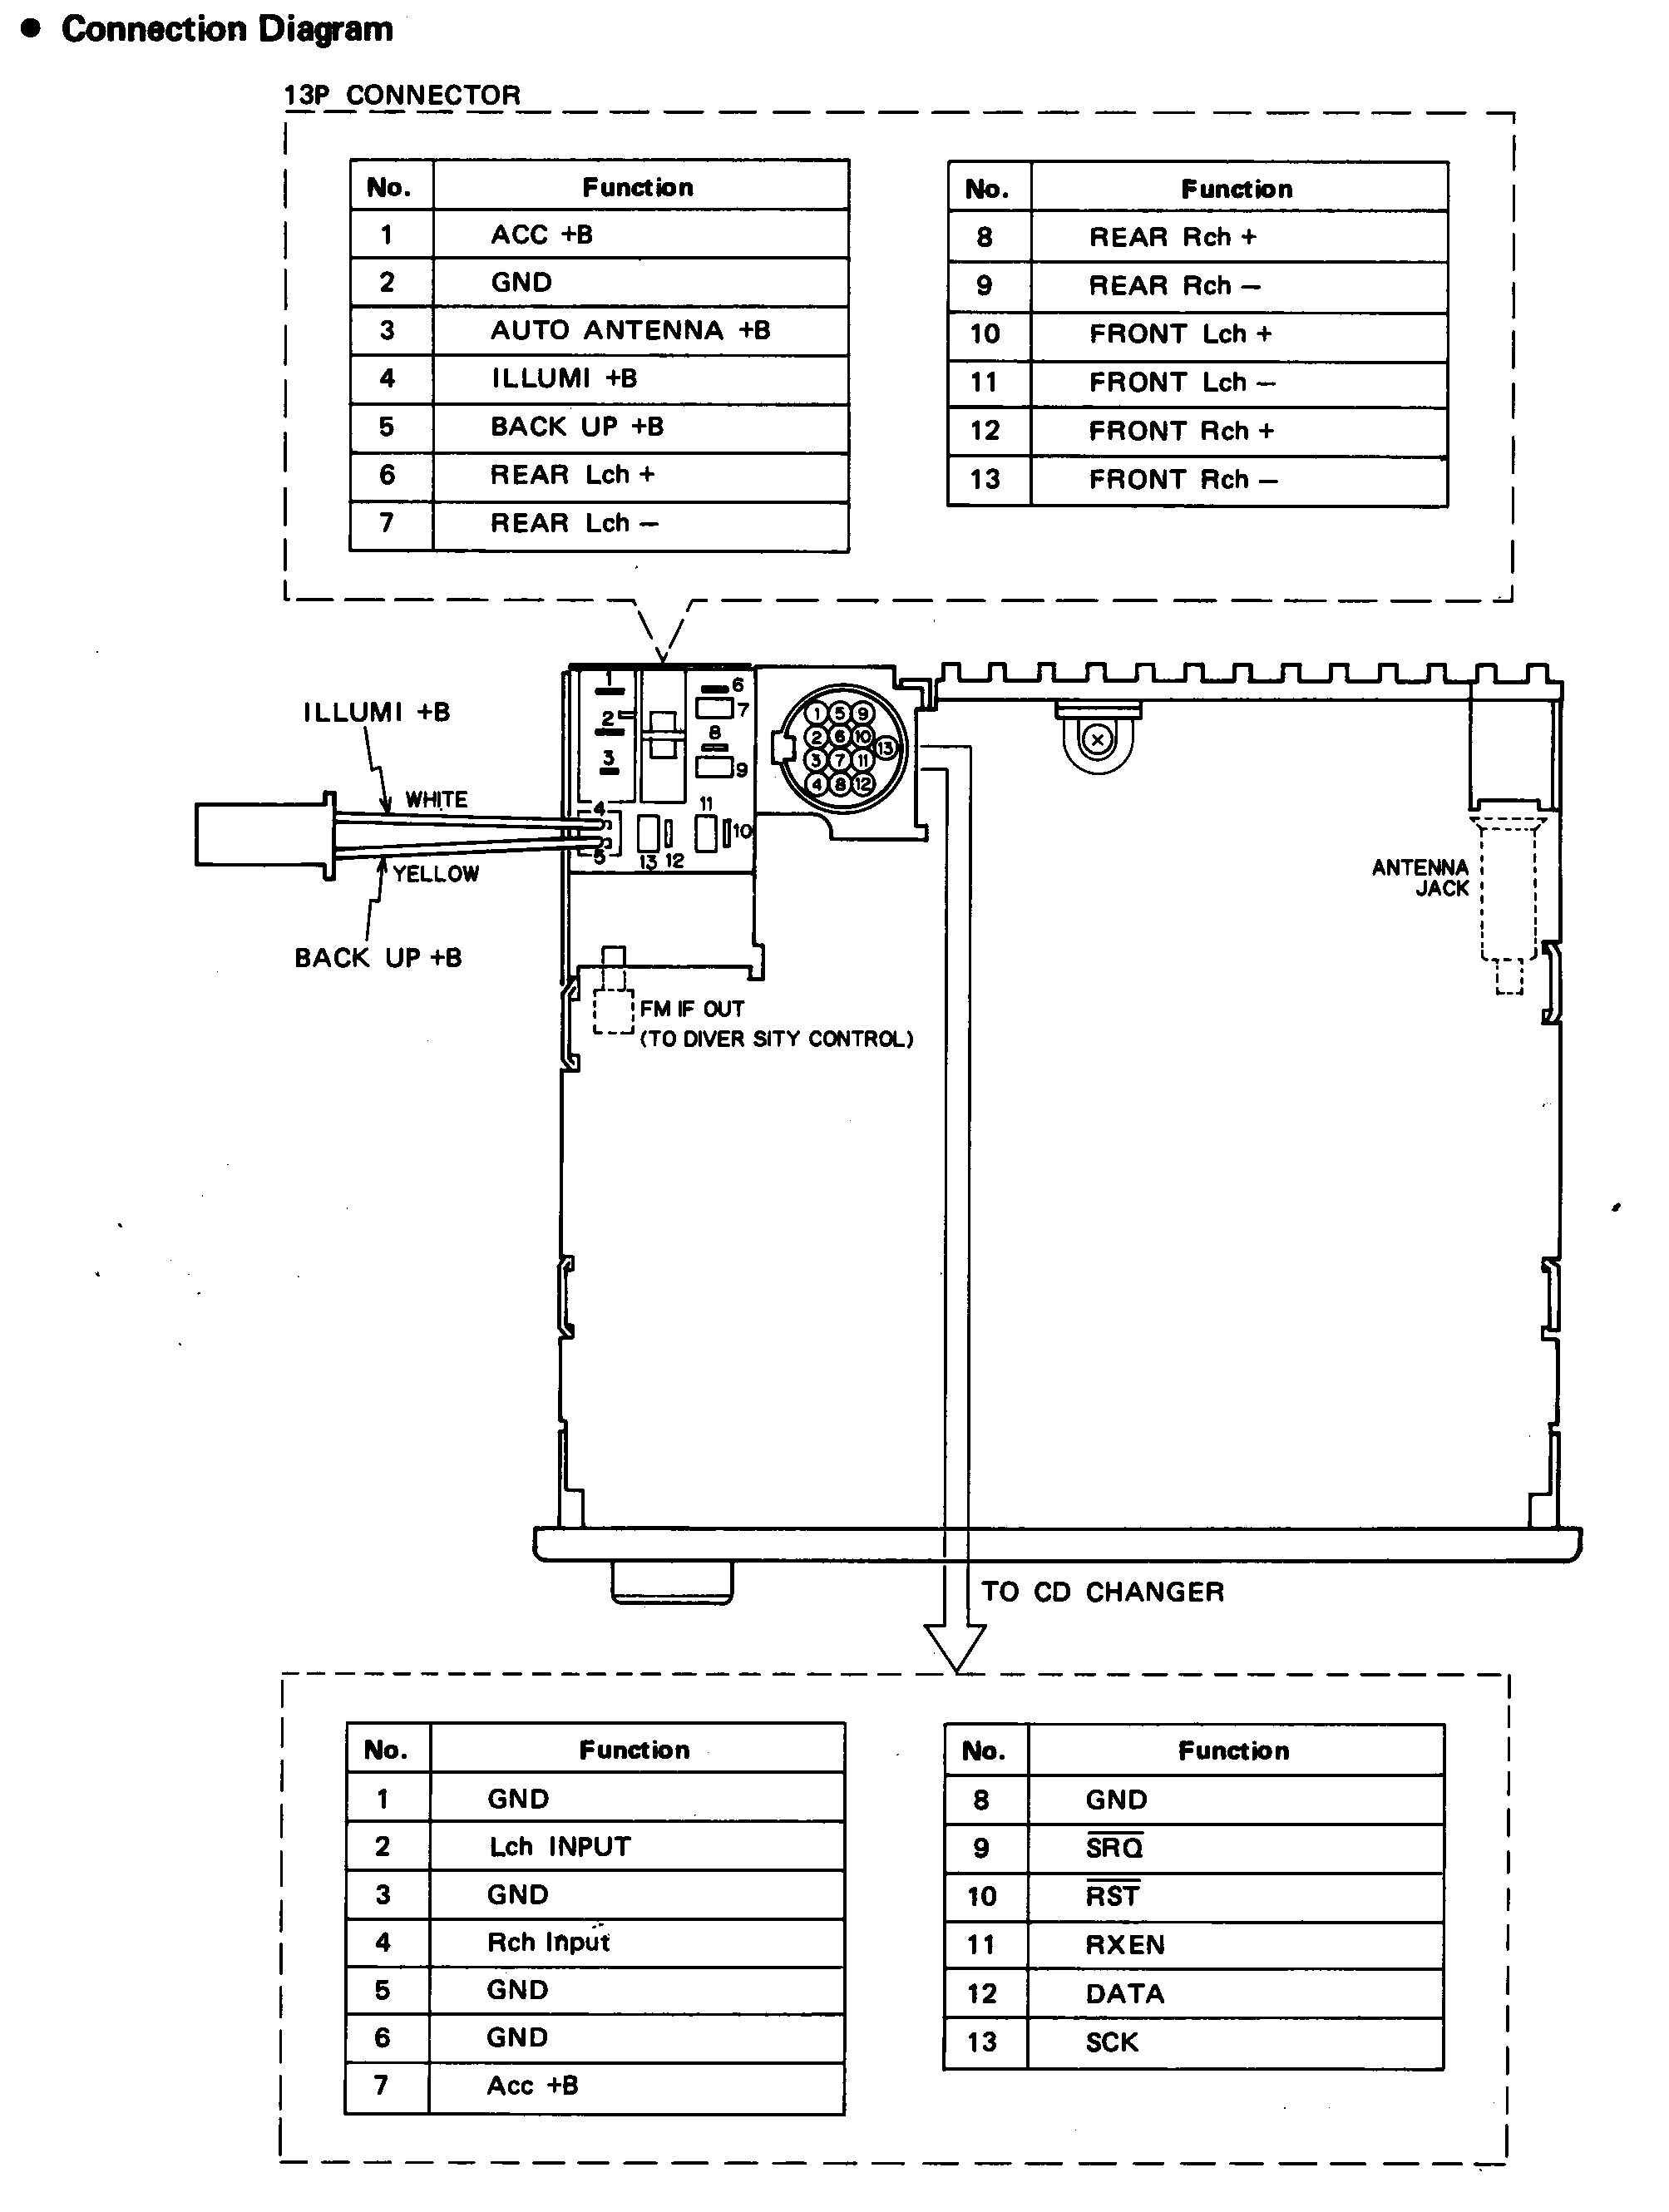 Bmw 325i Plug Wiring Diagram Electrical Diagram Schematics 2003 BMW 325I  Radio Wire Diagram 1989 Bmw 325i Wiring Diagram. Source. fuse box ...